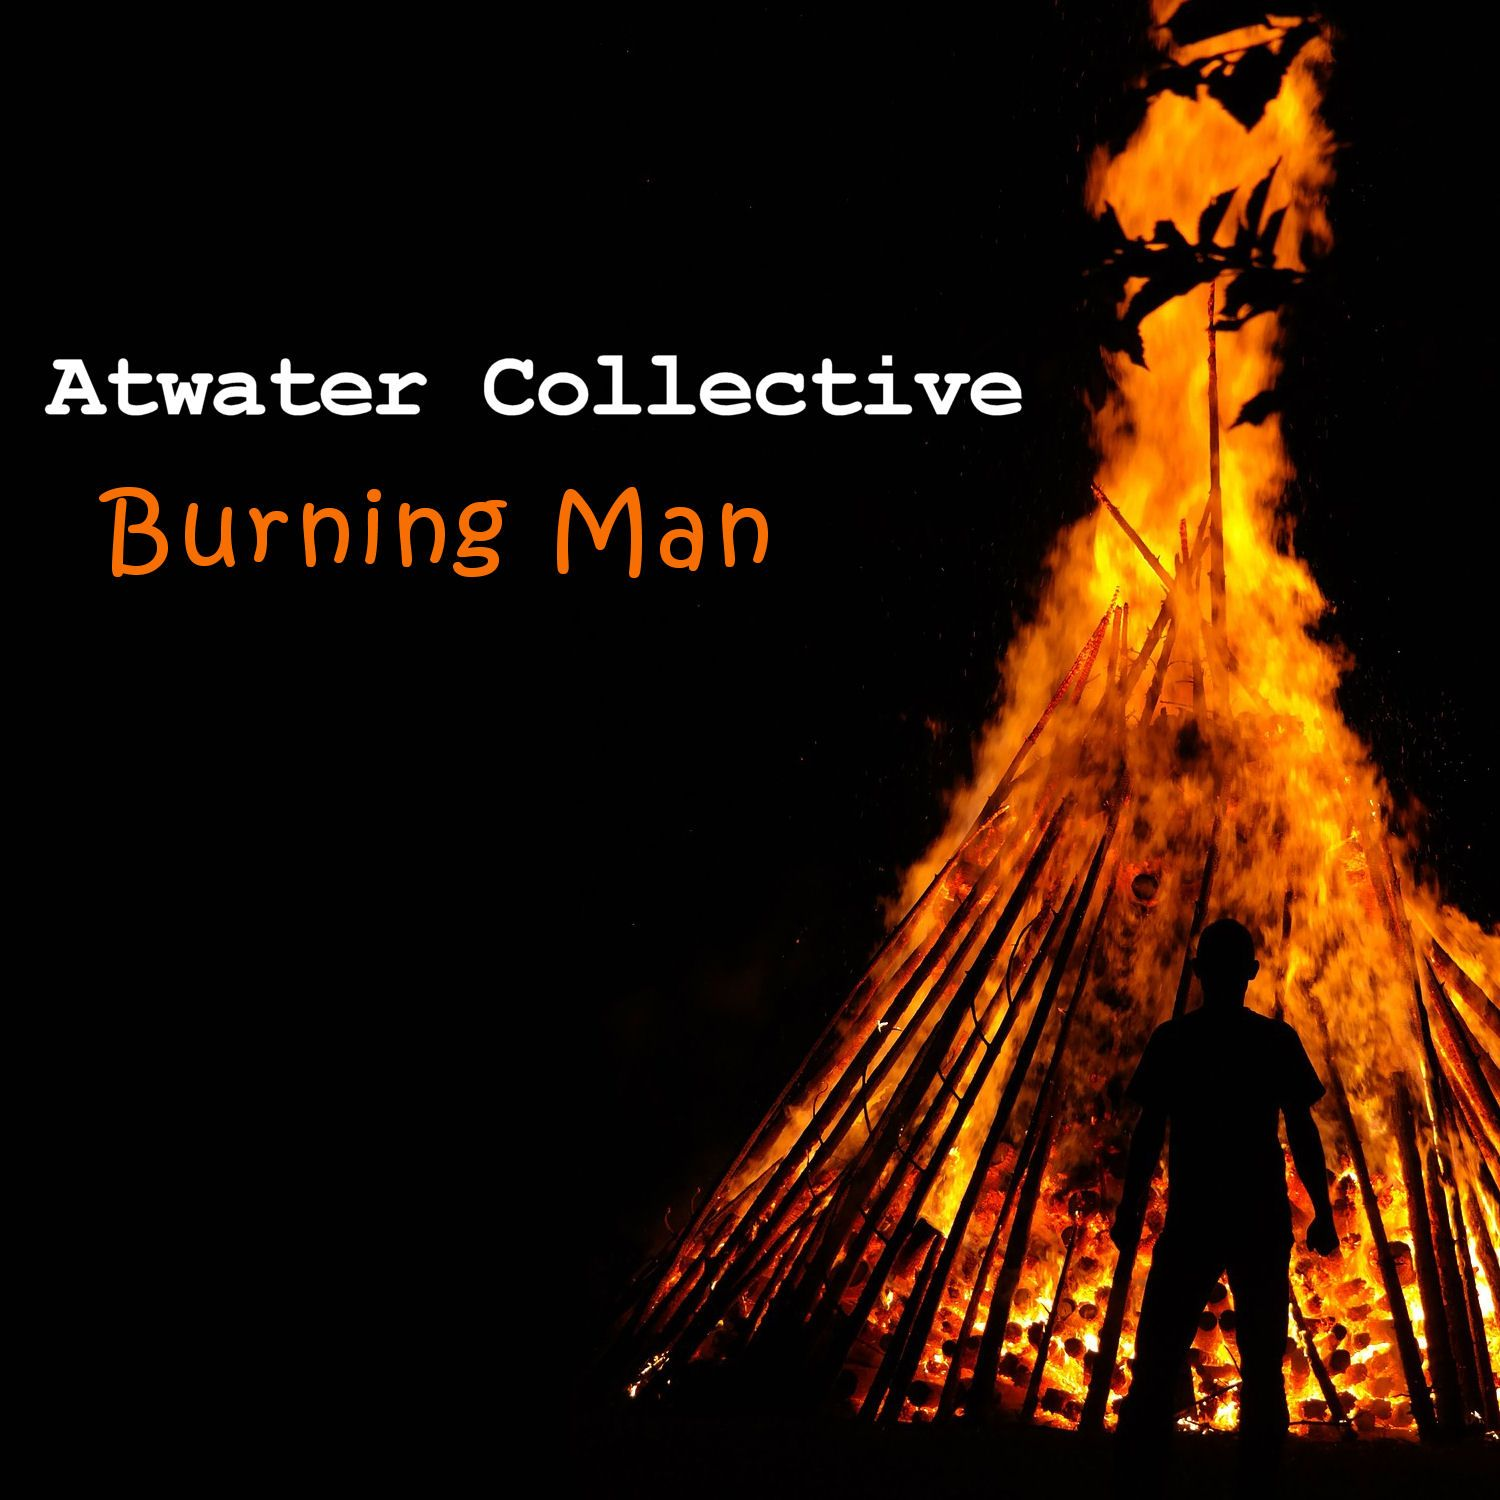 Atwater Collective